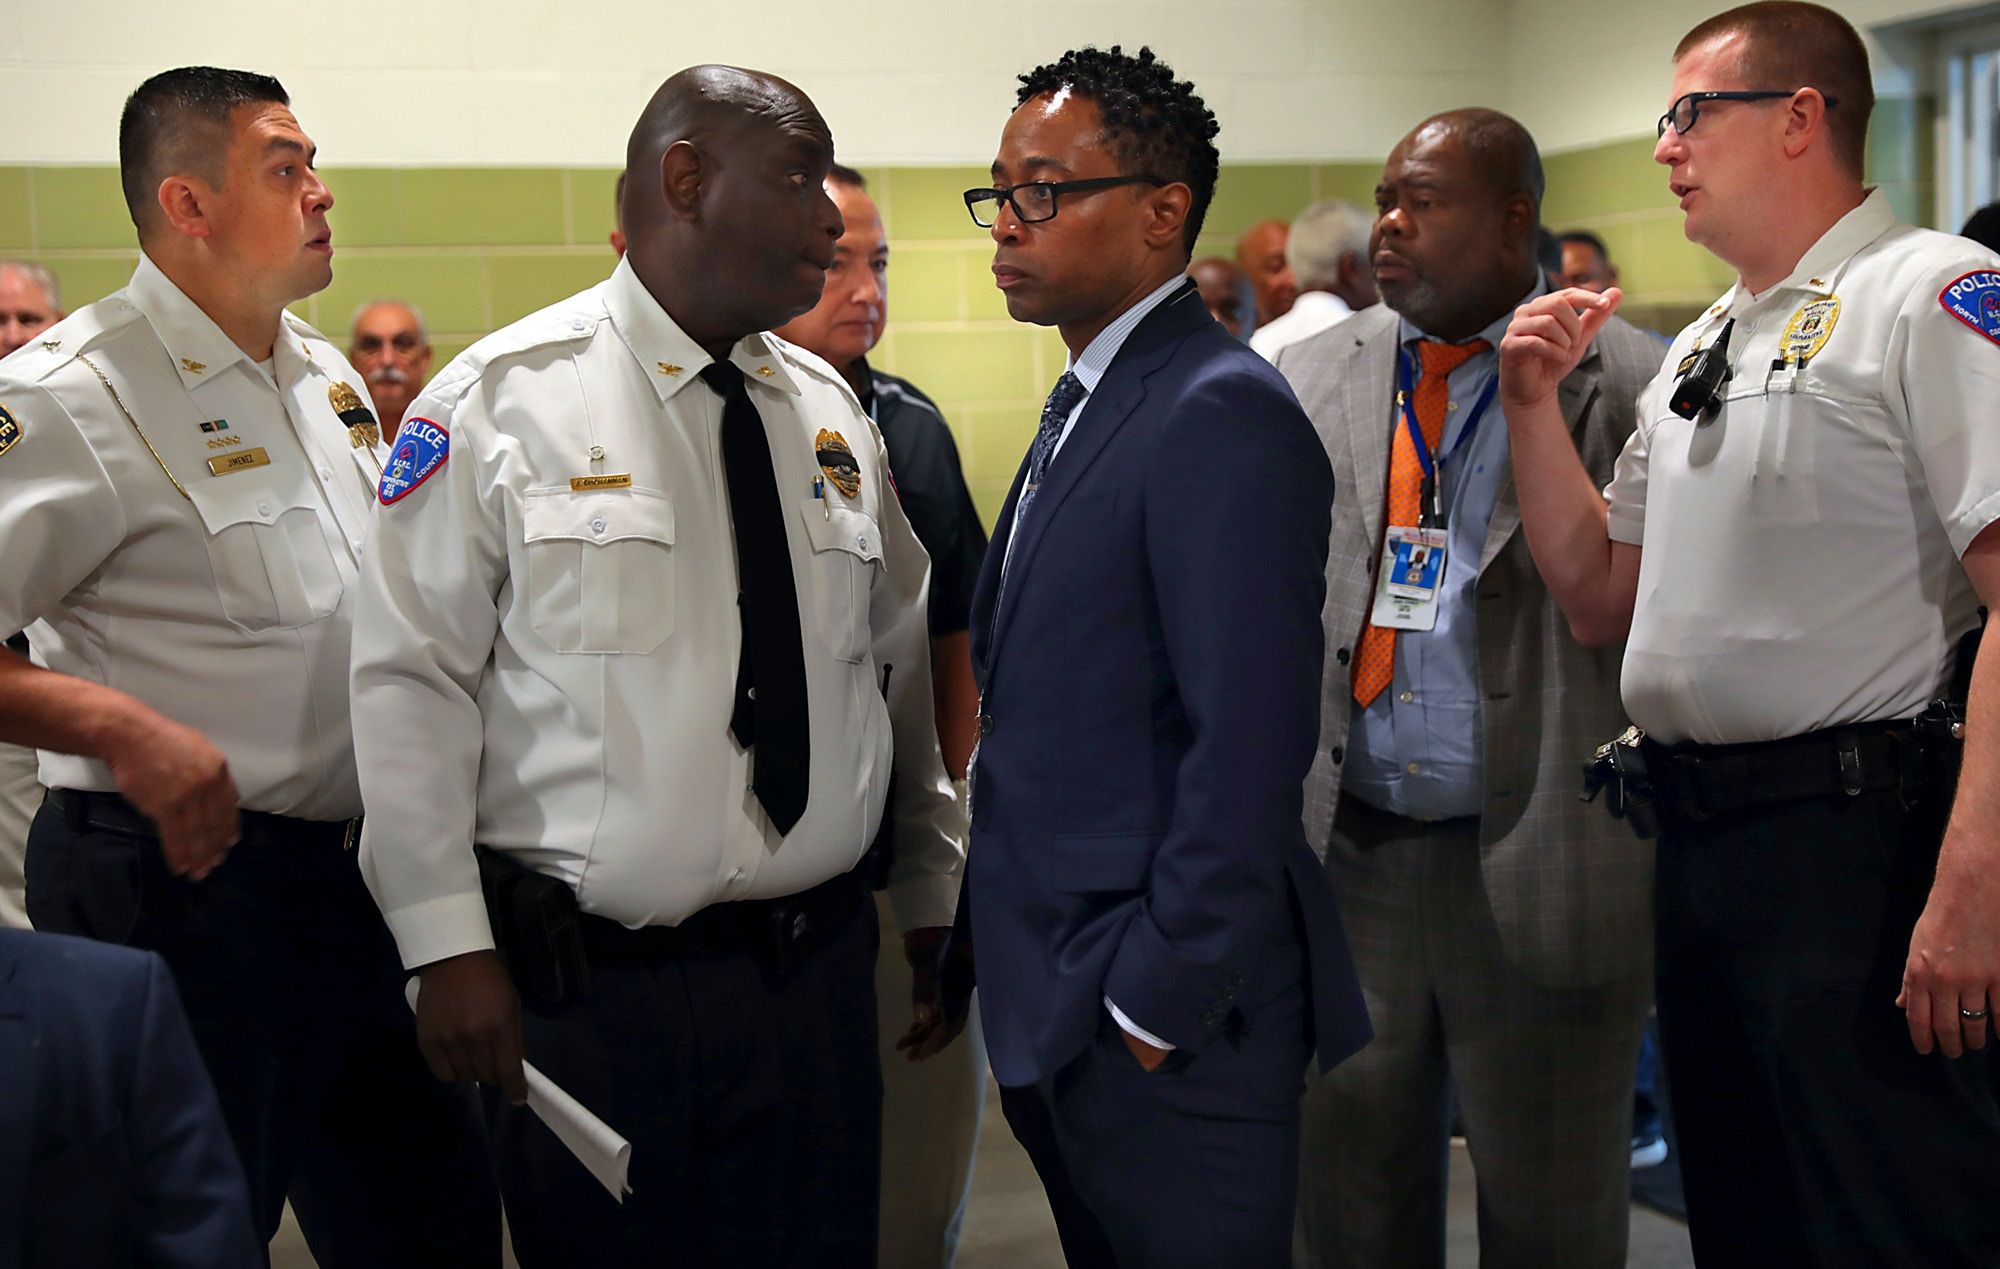 St. Louis County Prosecutor Wesley Bell, center, is surrounded by area police chiefs, on June 24, 2019.